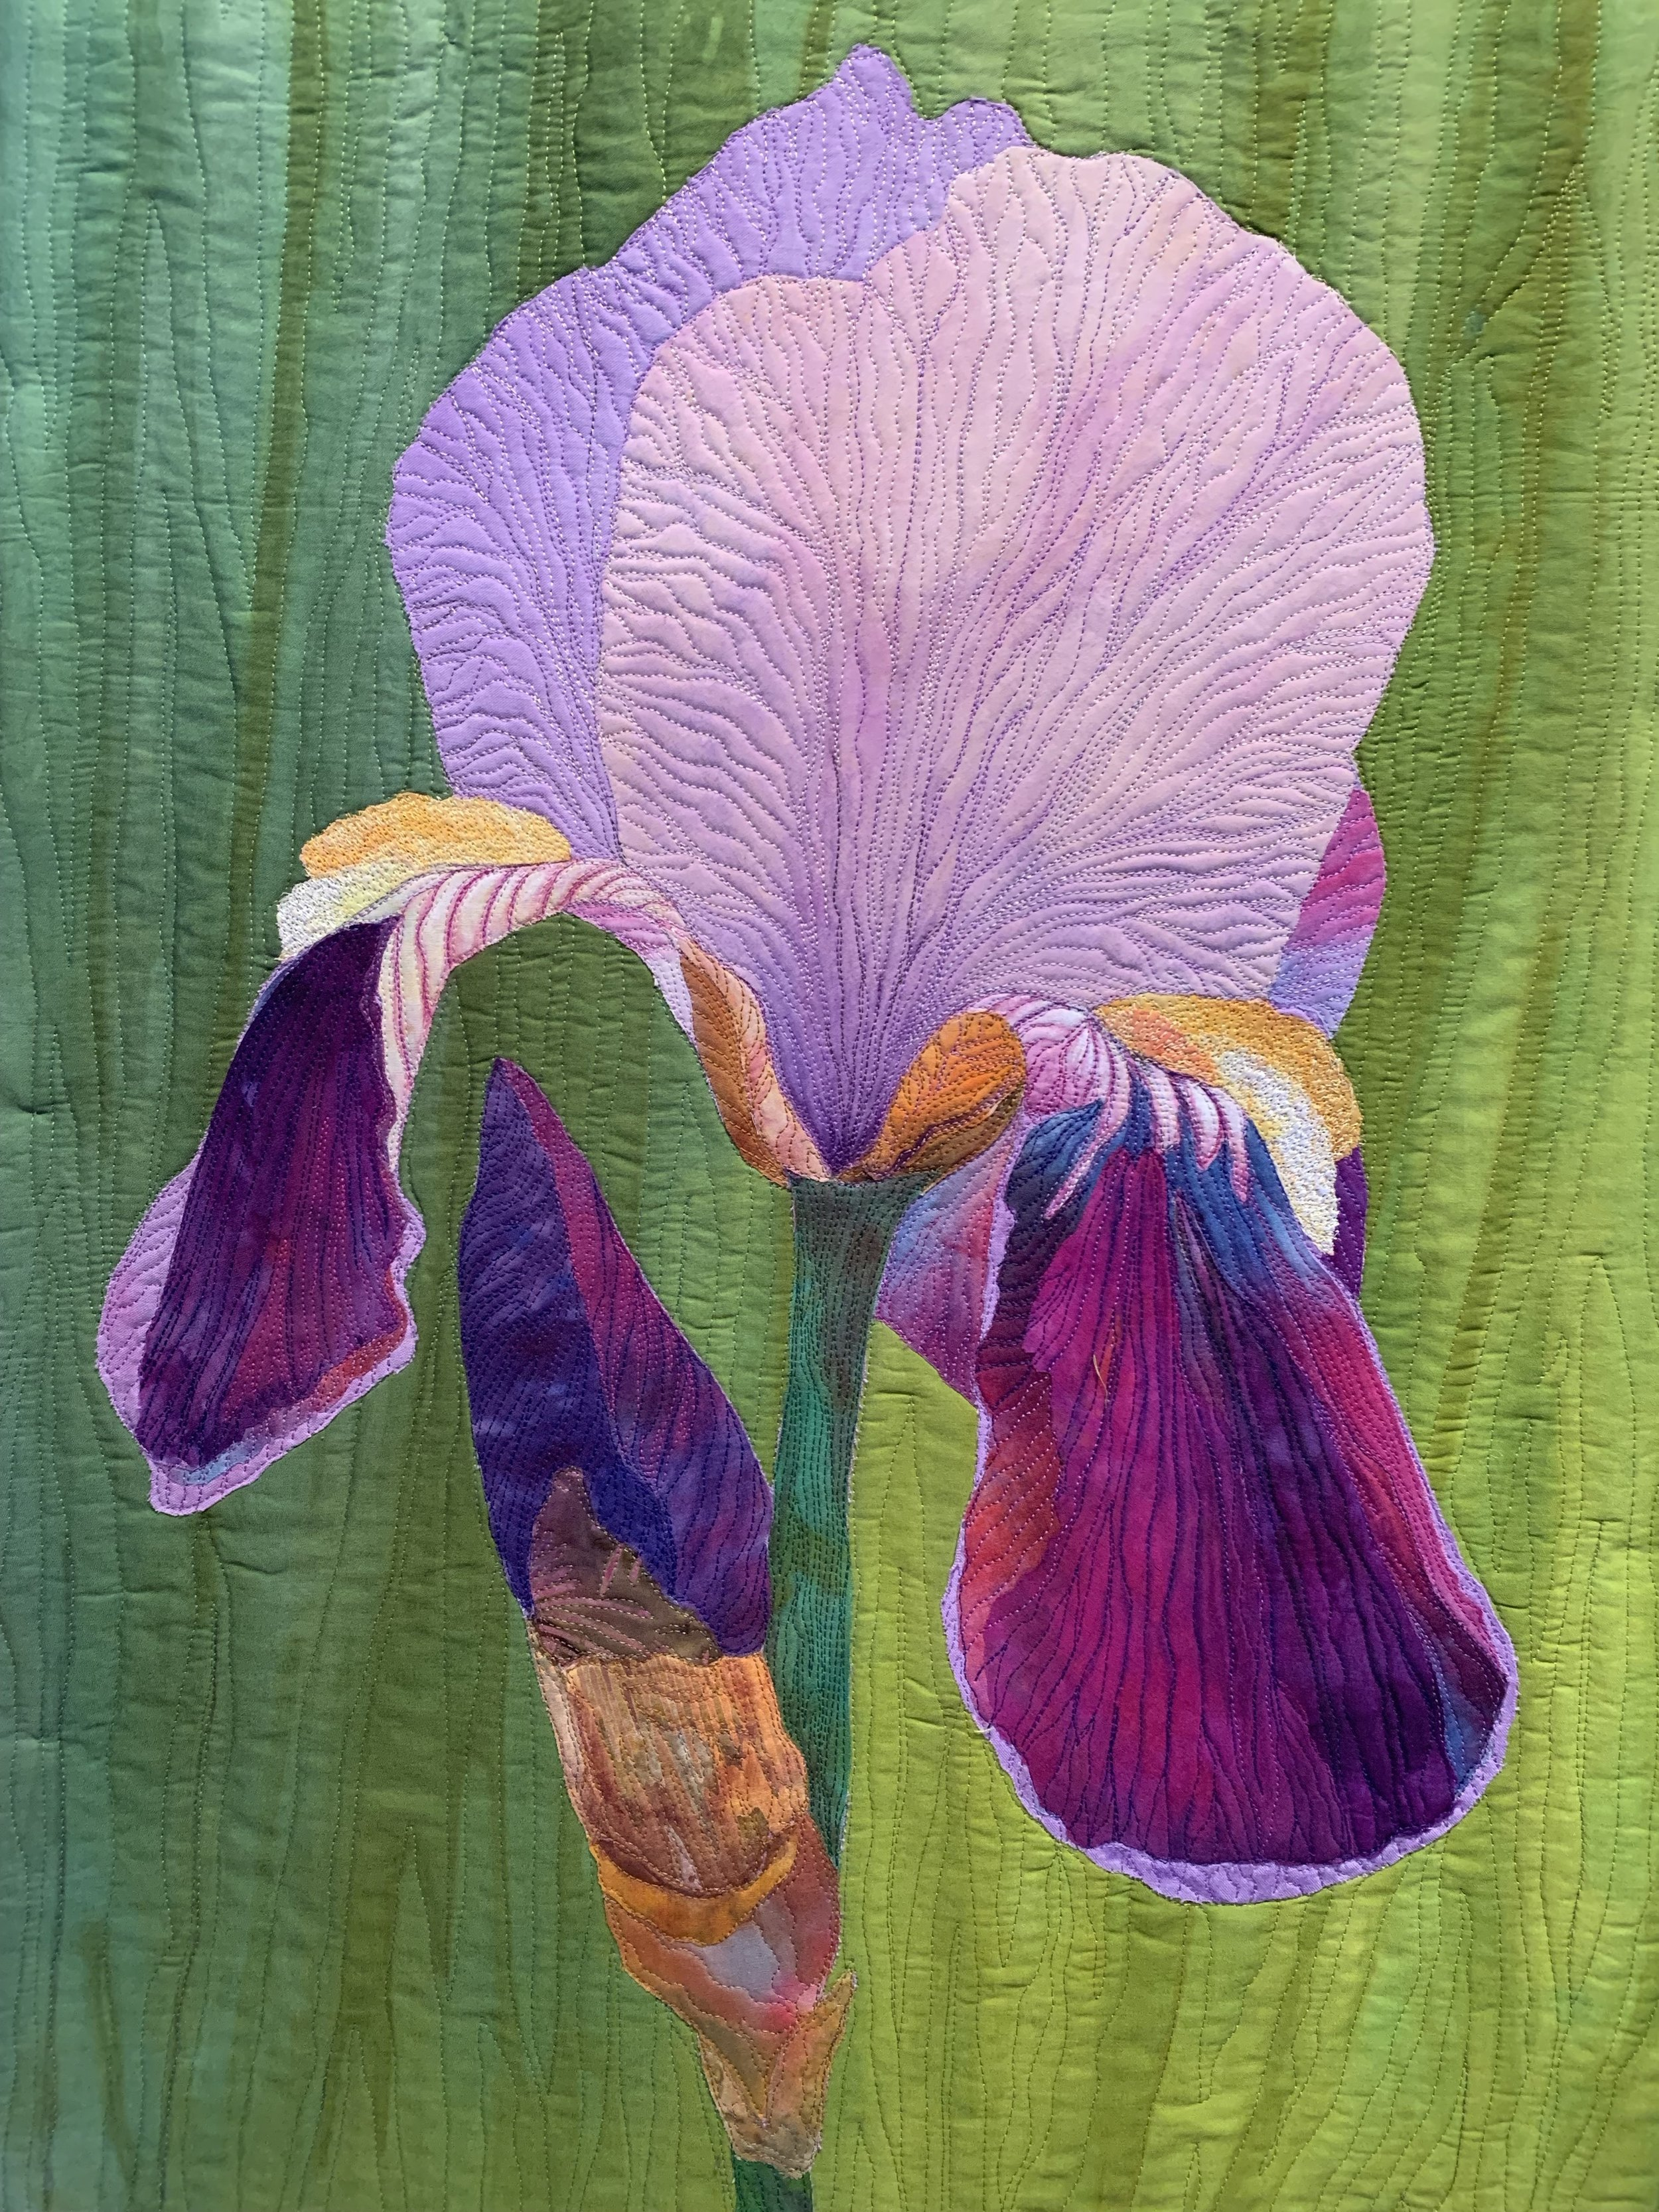 Bearded Iris  - Workshop which adds vibrant inks, including All Purpose Ink and Inktense blocks for realism.